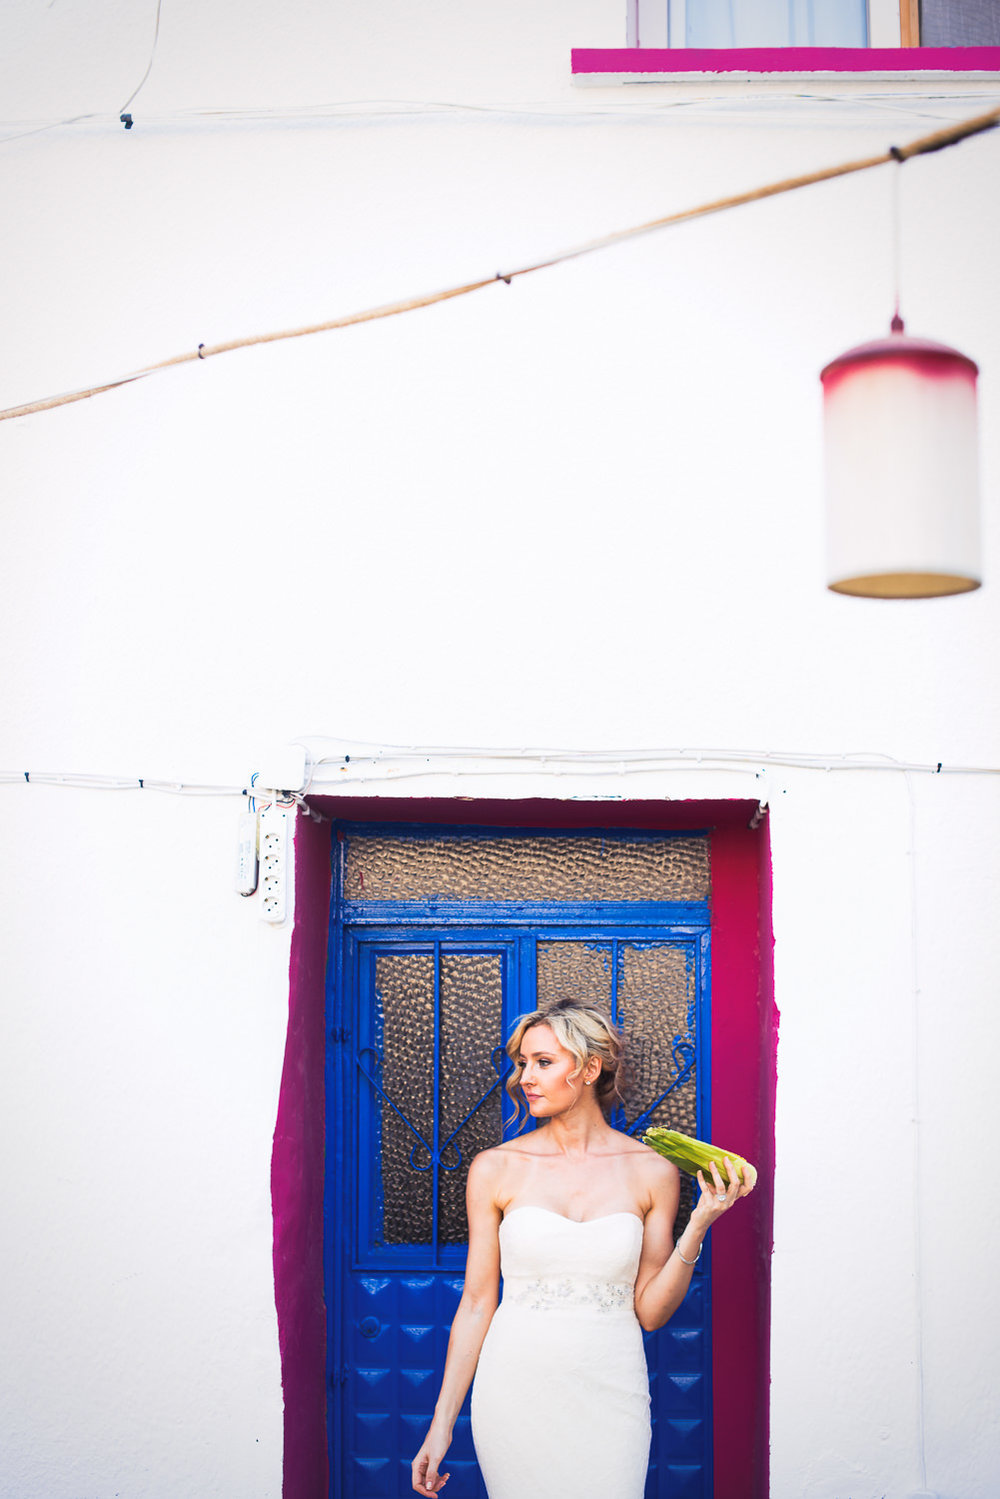 Turkey Wedding - Beautiful Shot of Bride in Doorway